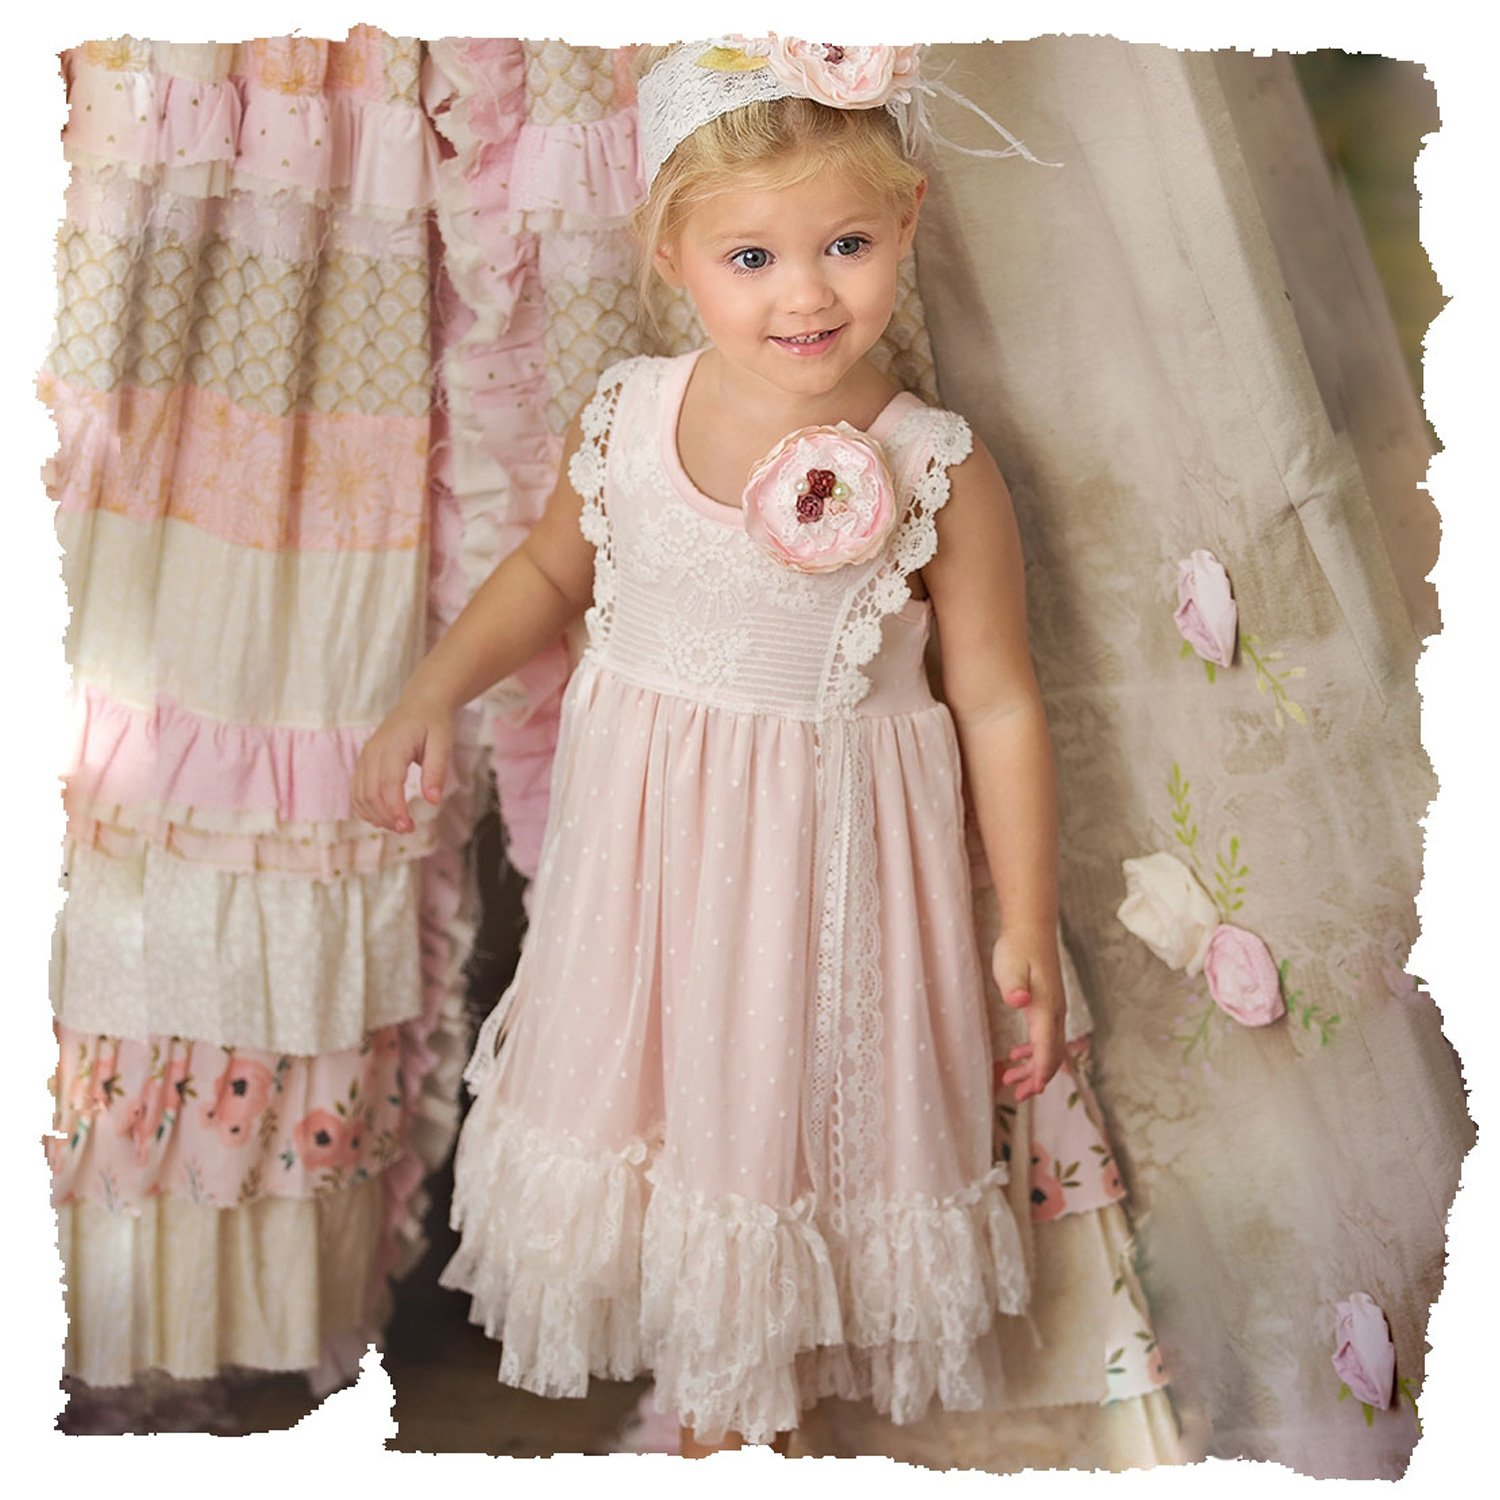 378c49cb9 Frilly Frocks Vivian Rose Dress for Toddlers